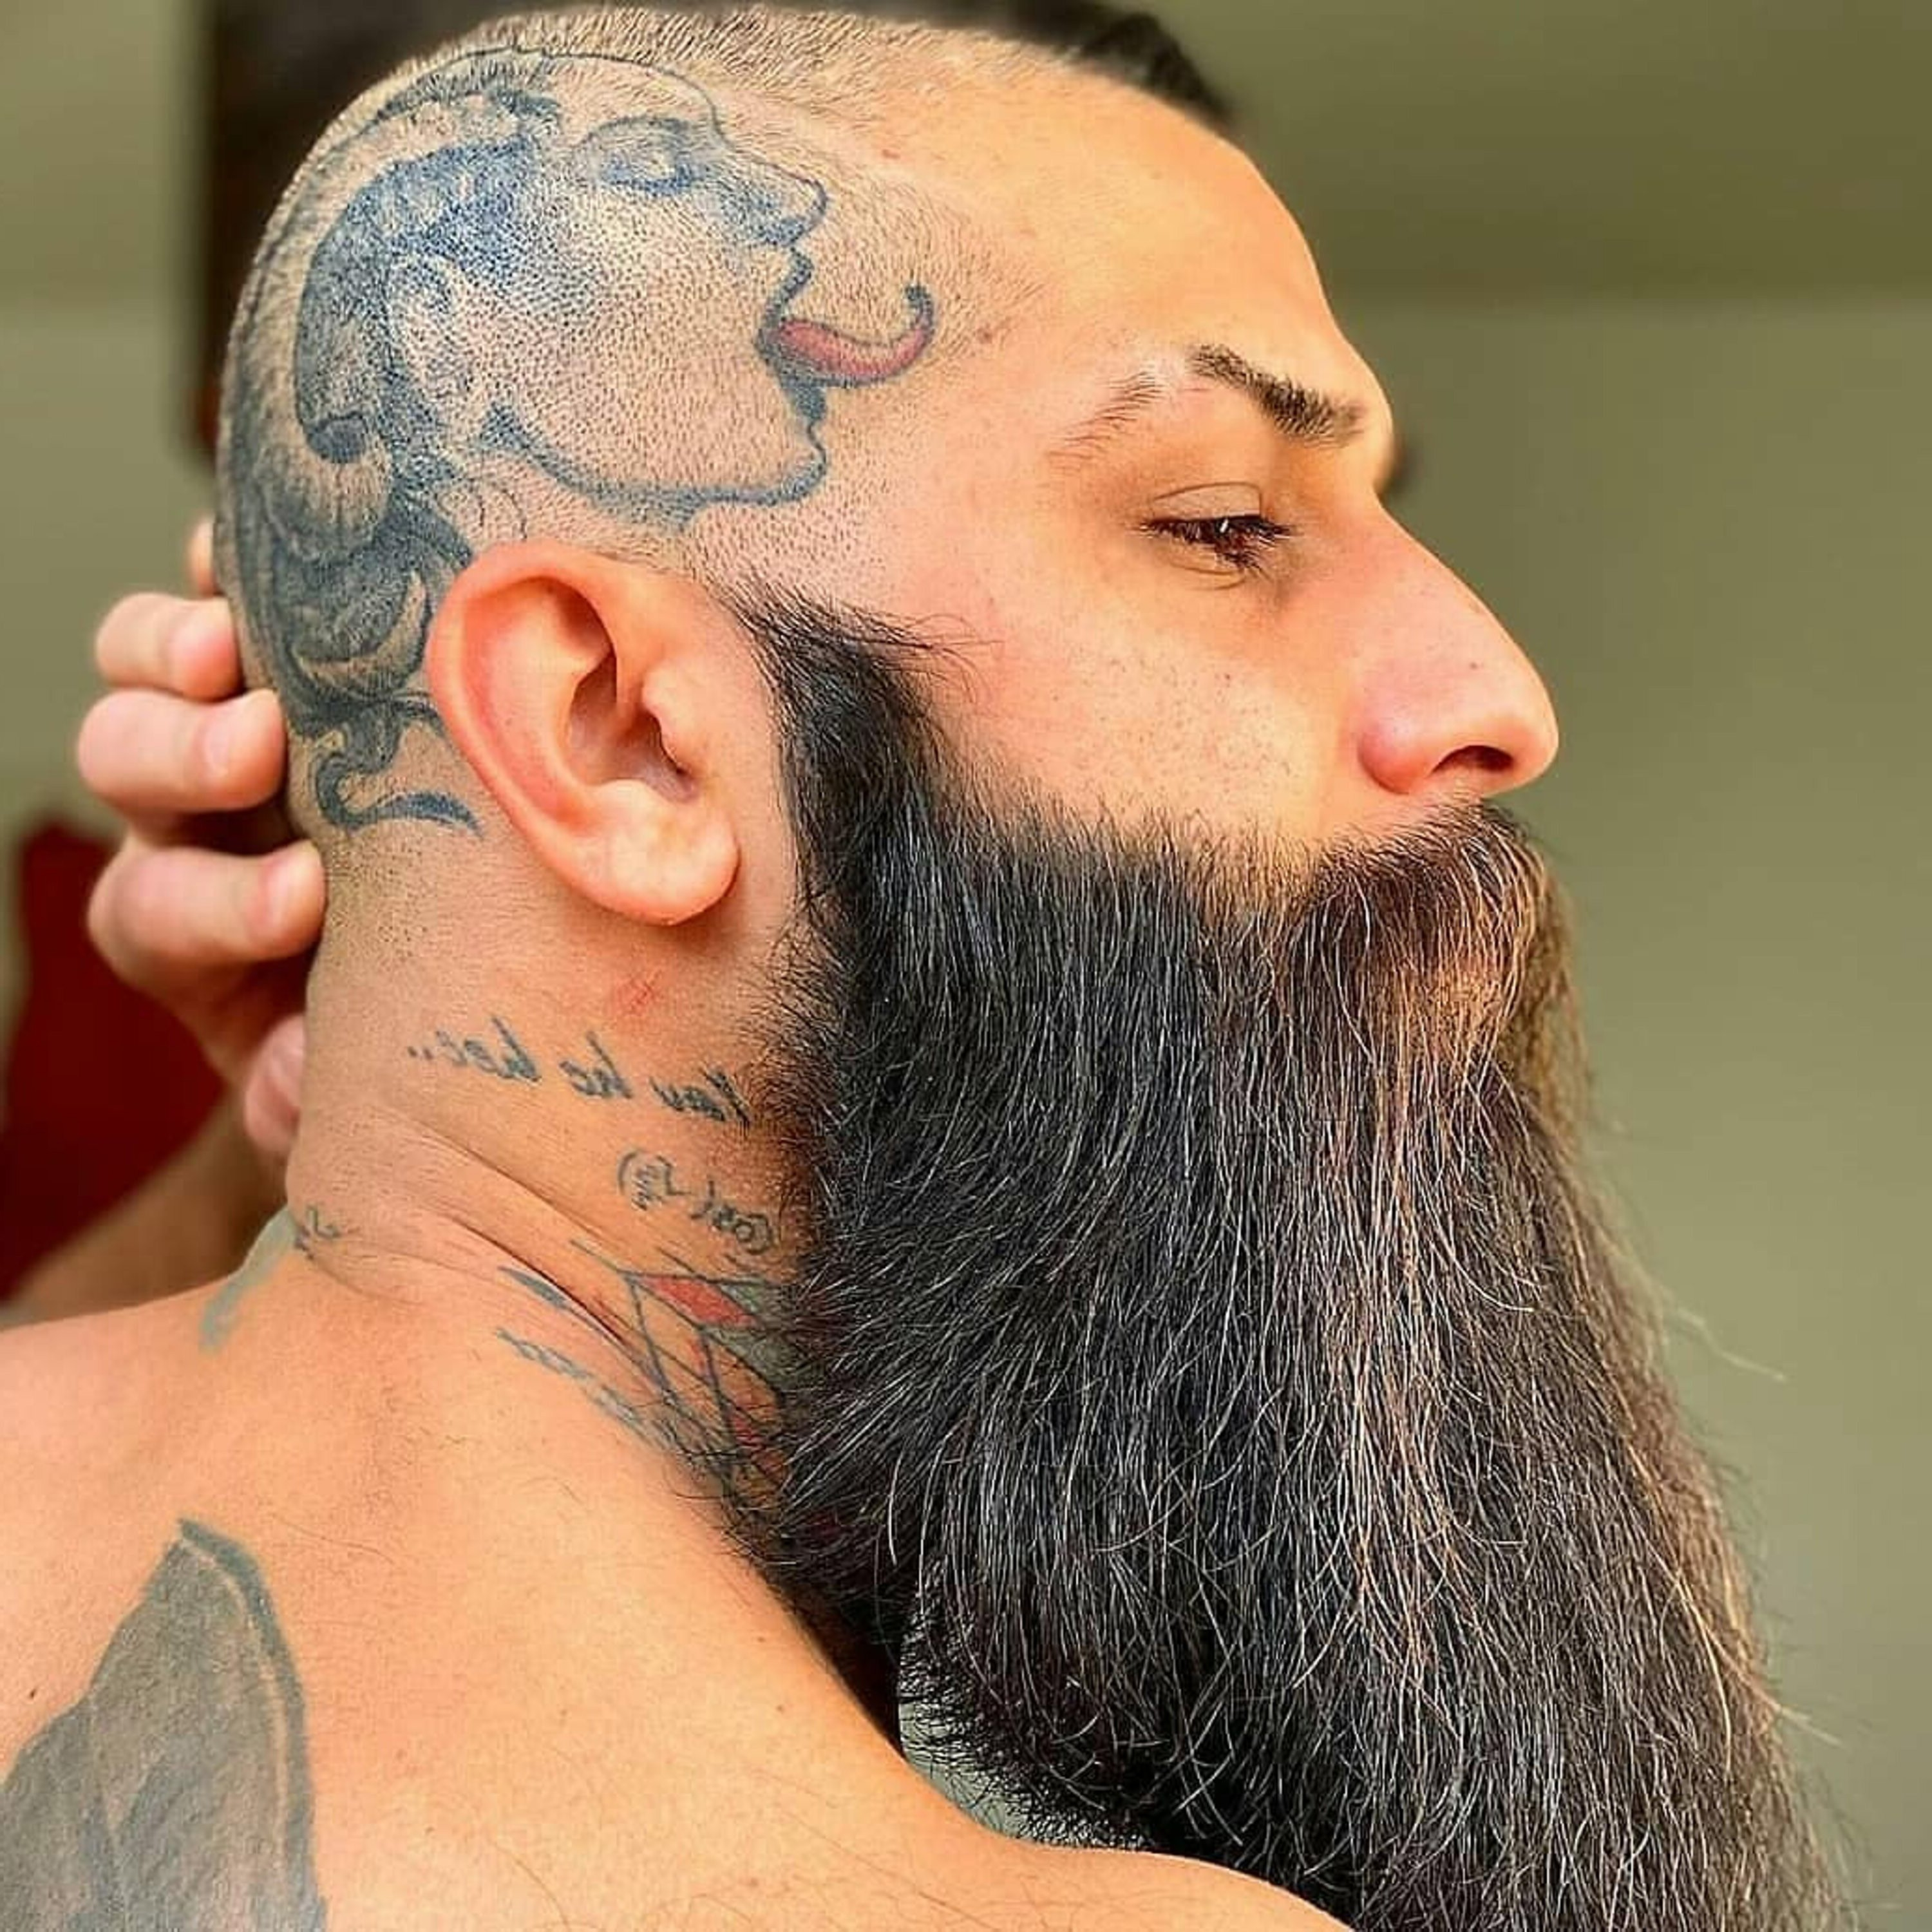 A full beard style for young guys.